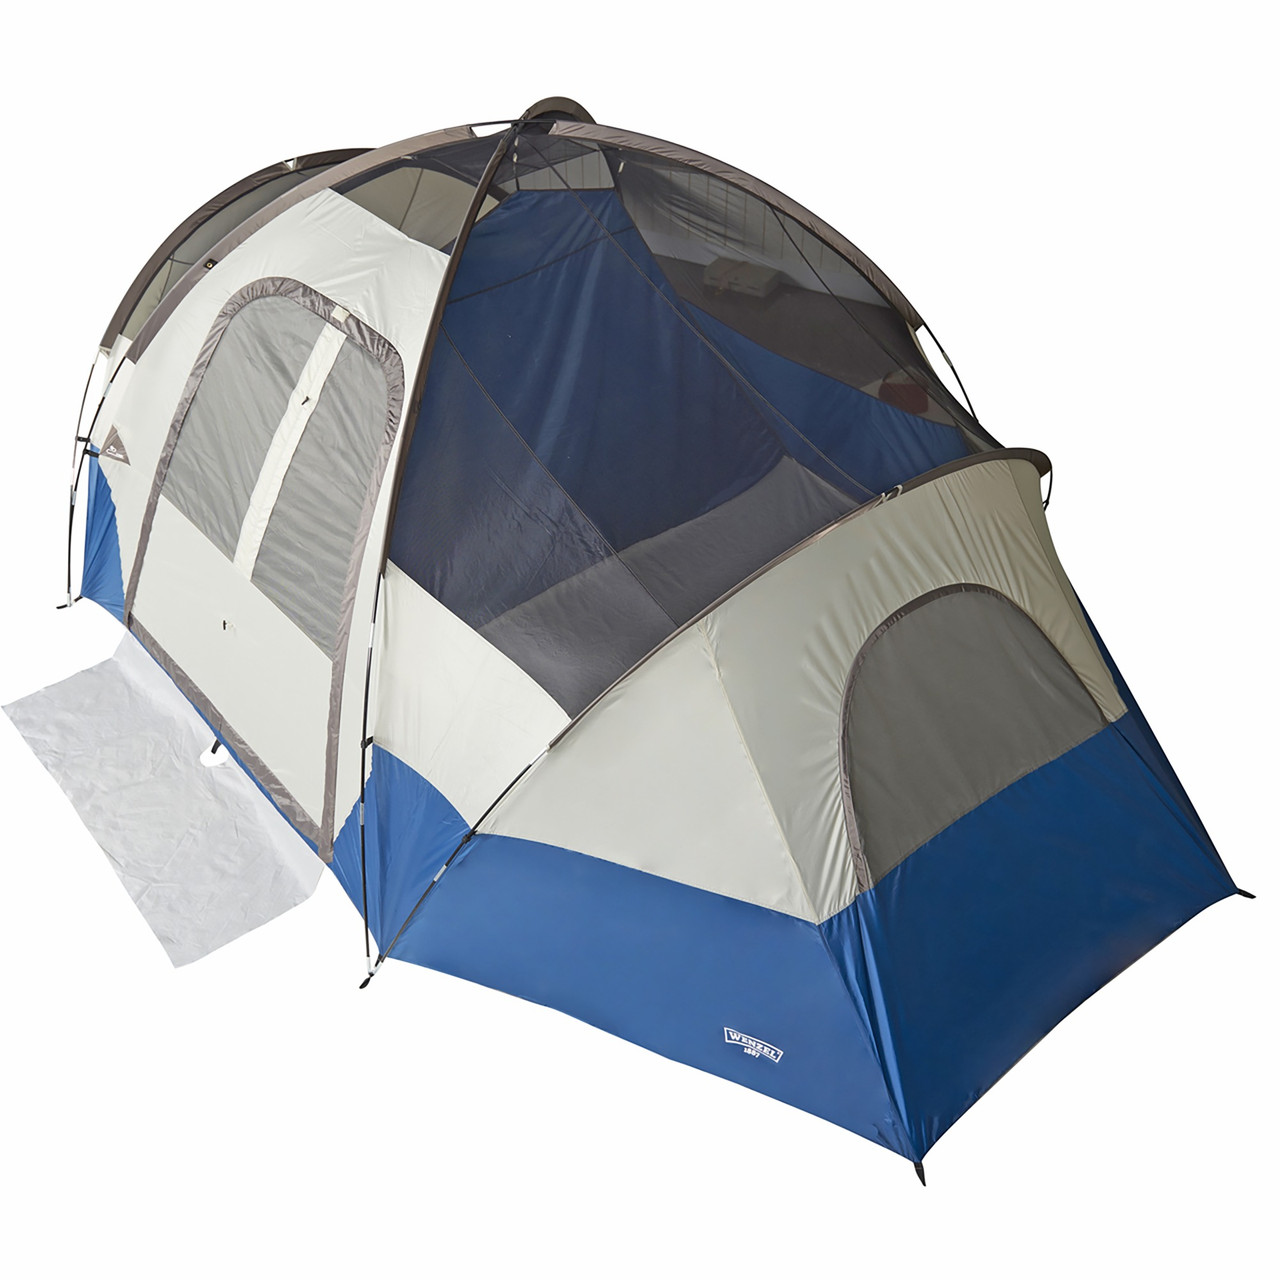 Wenzel Pinyon 10 Person Dome Tent, blue/white, front view, no fly, top view